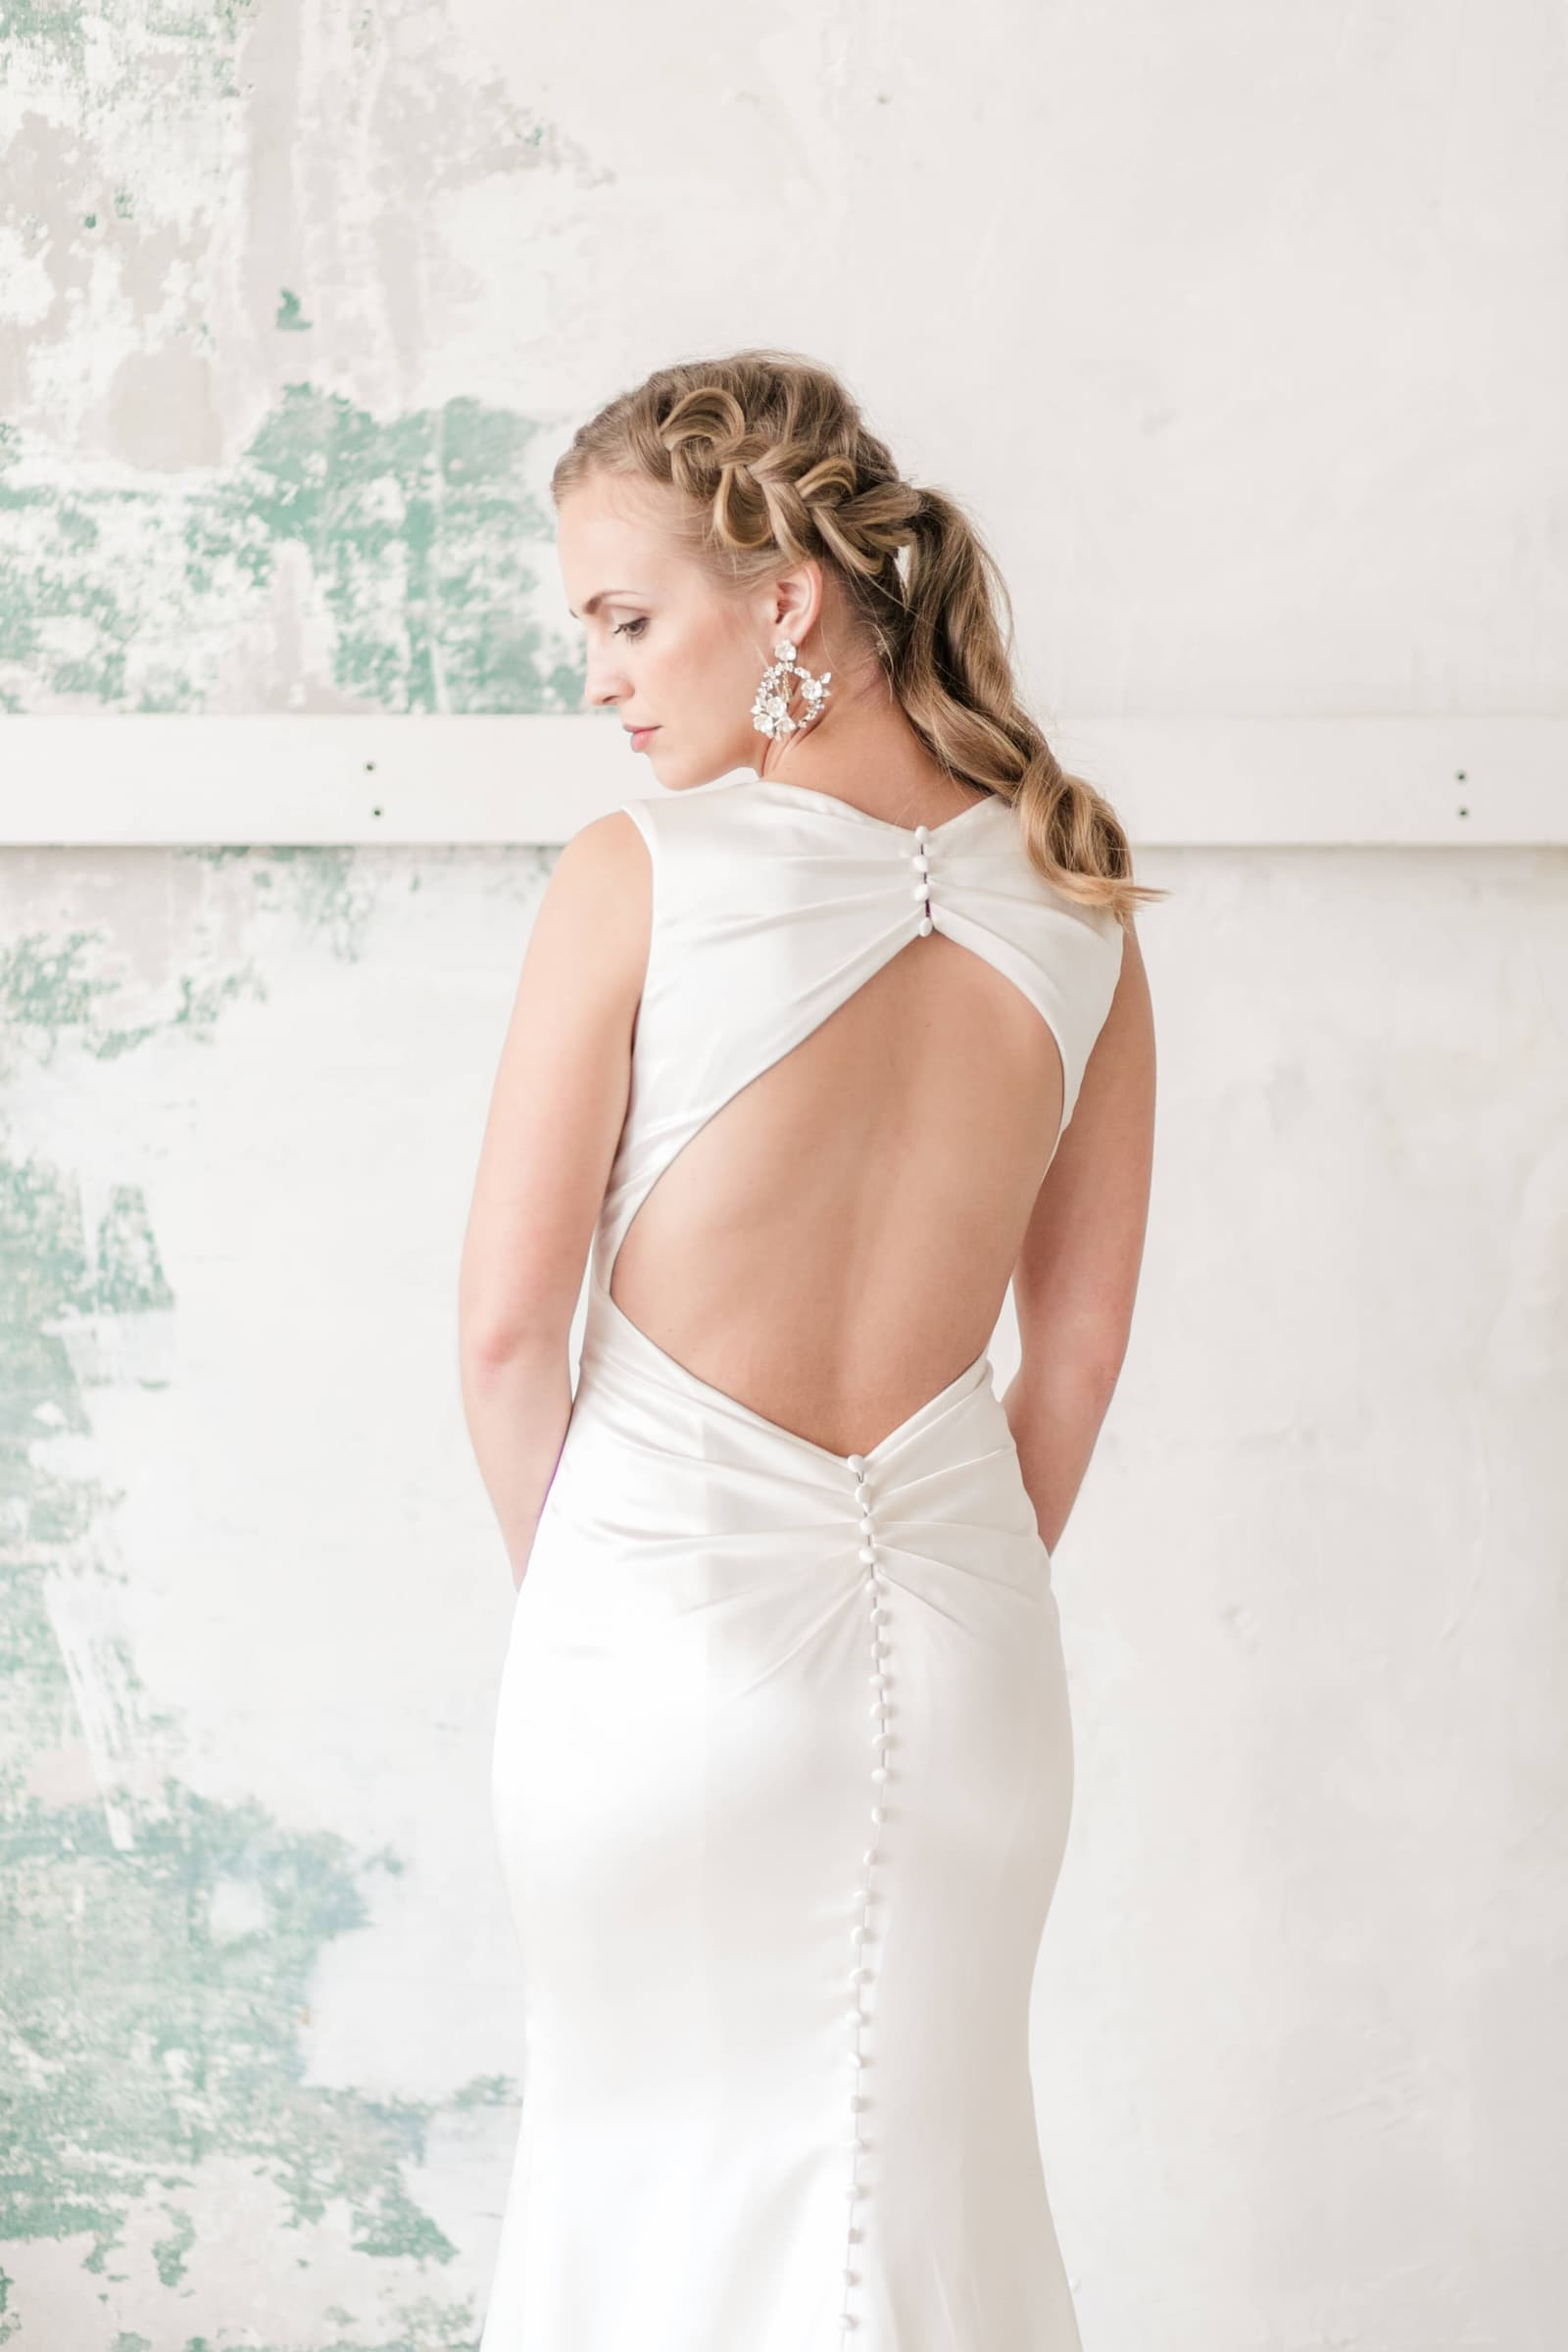 wedding dress jacksonville beach florida bride low back